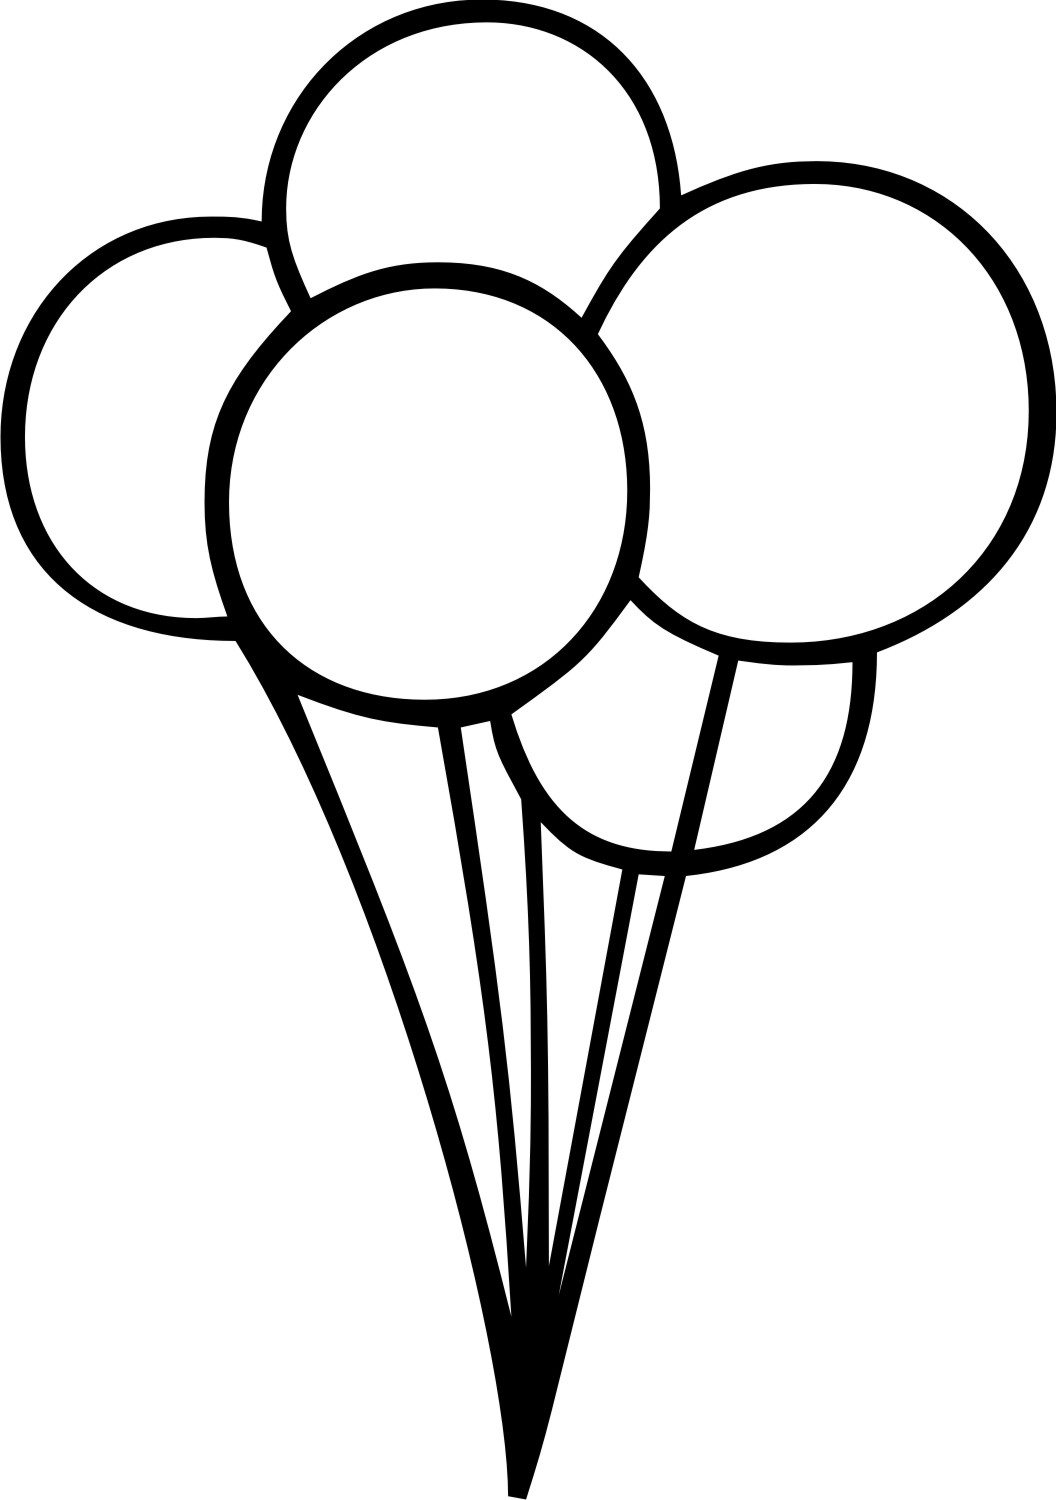 Balloon Designs Pictures Clipart